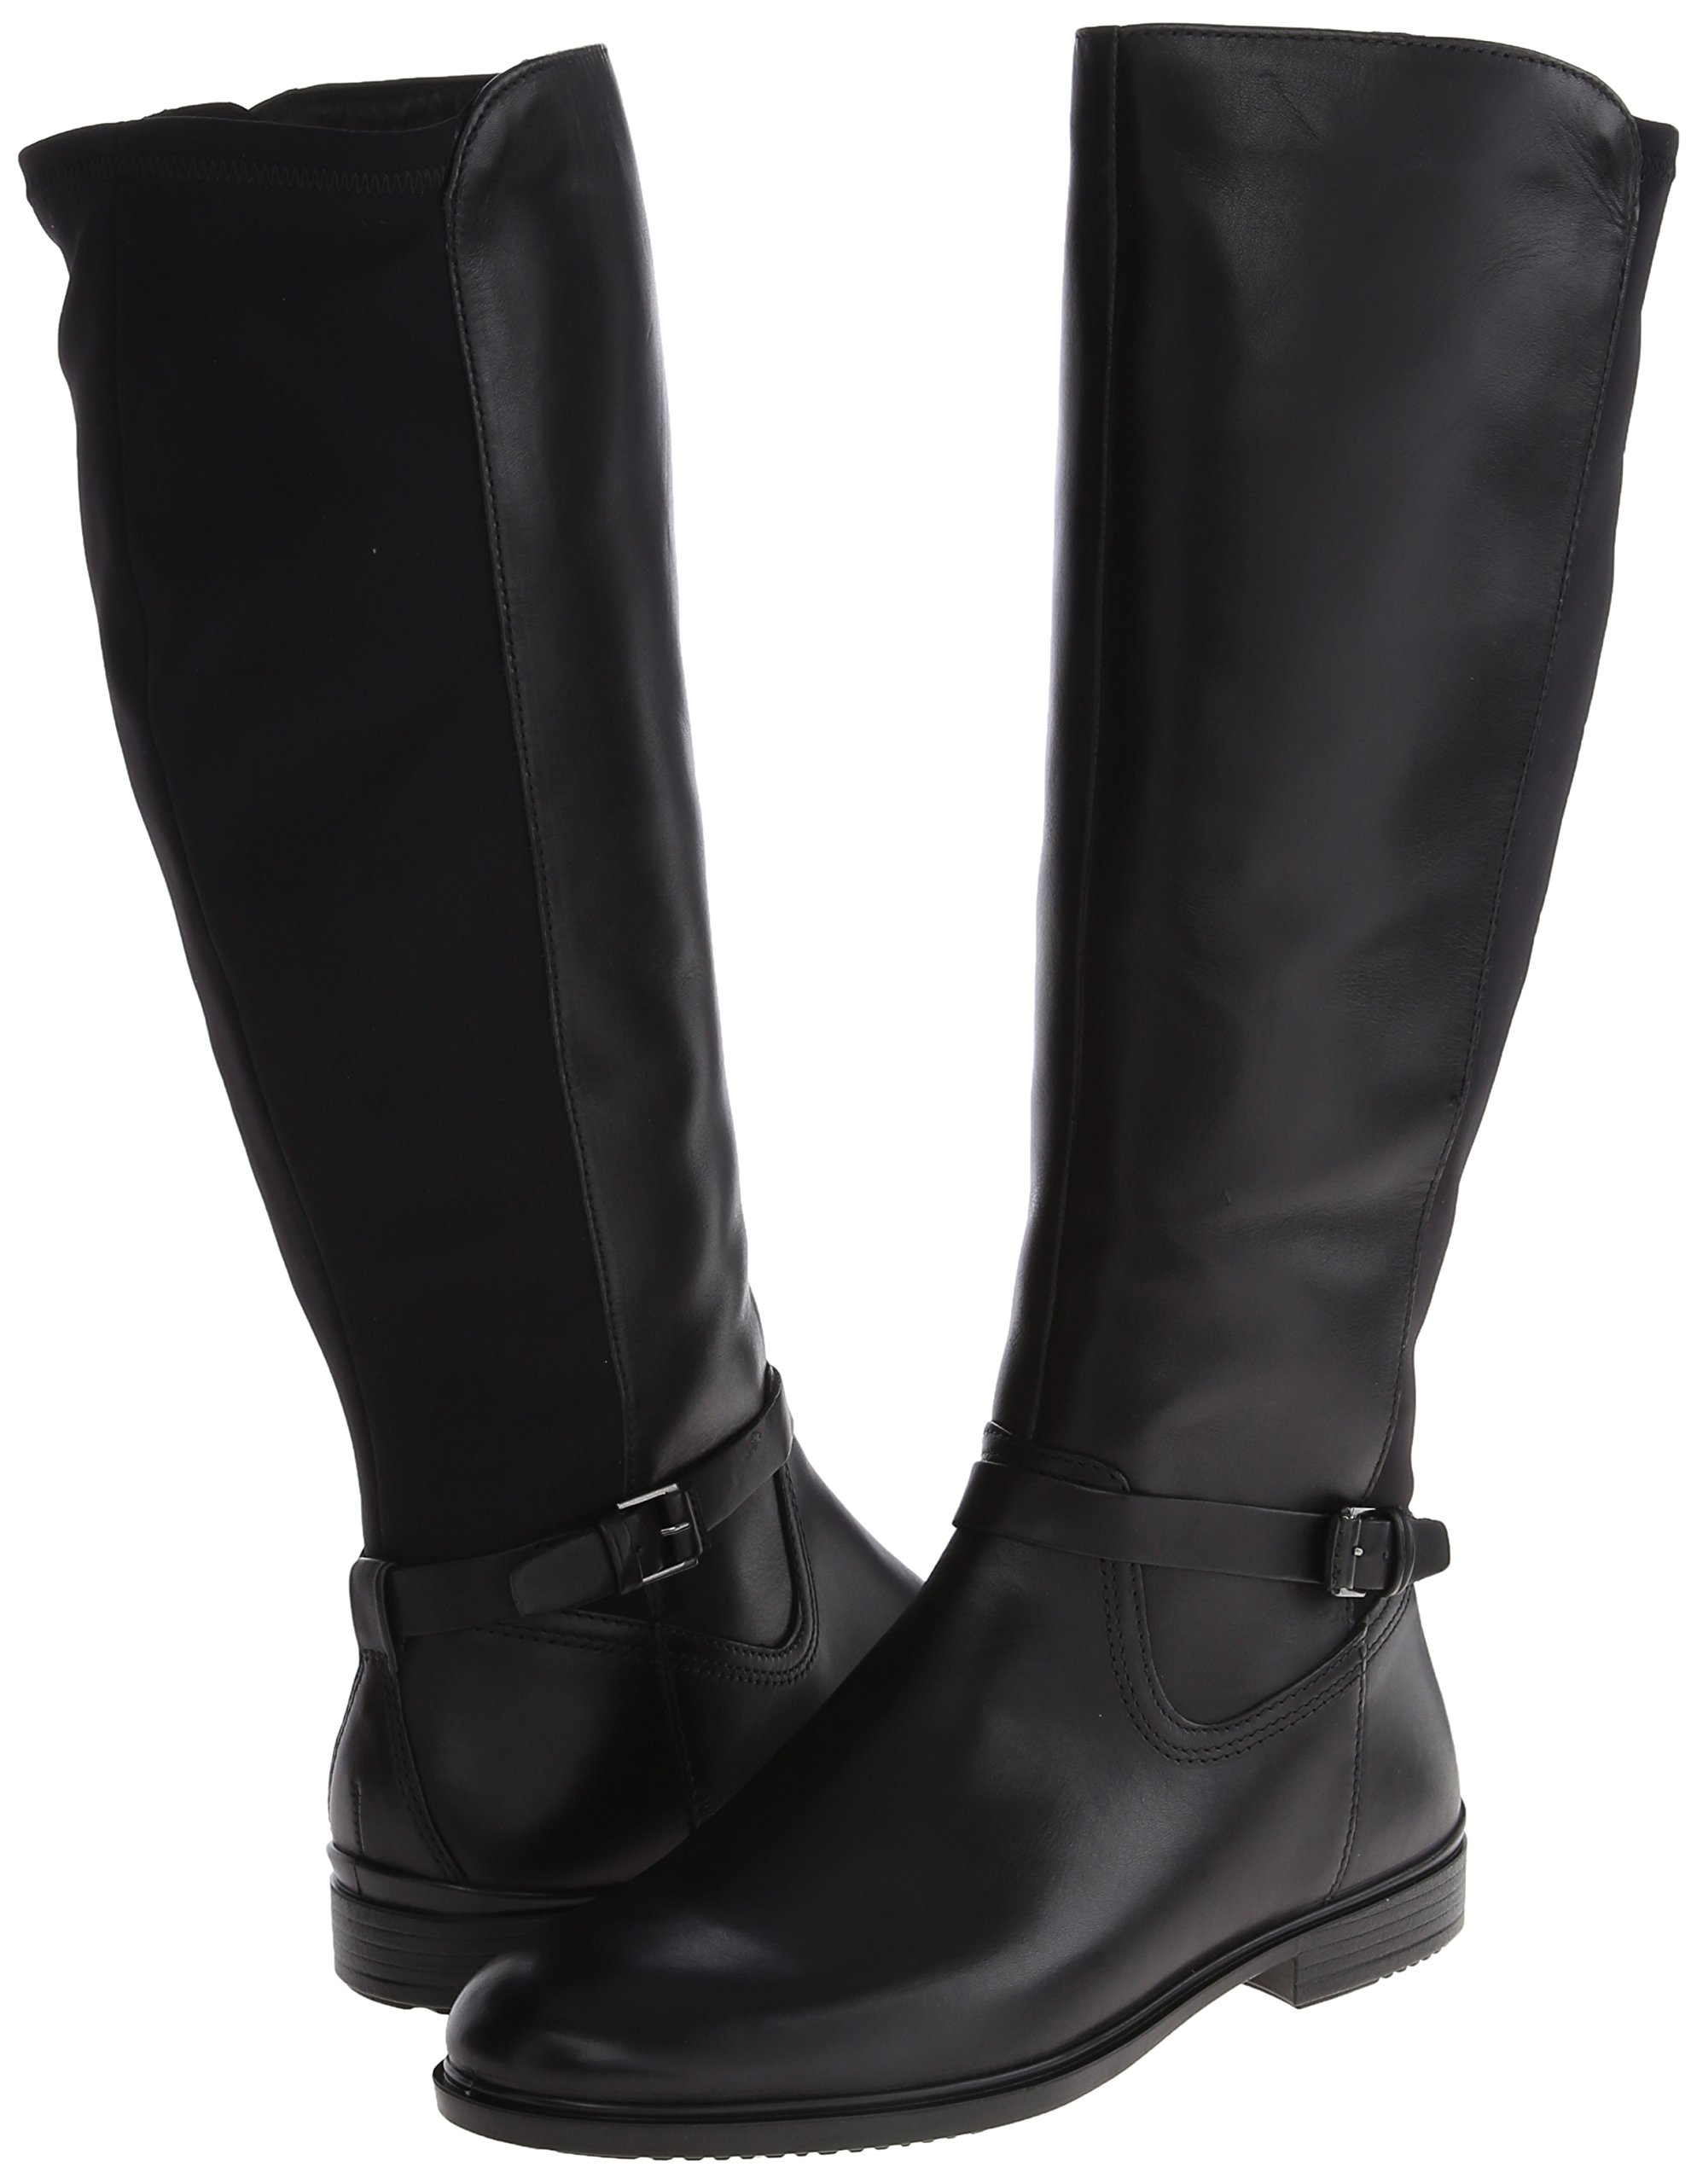 ecco women's touch 15 tall boot